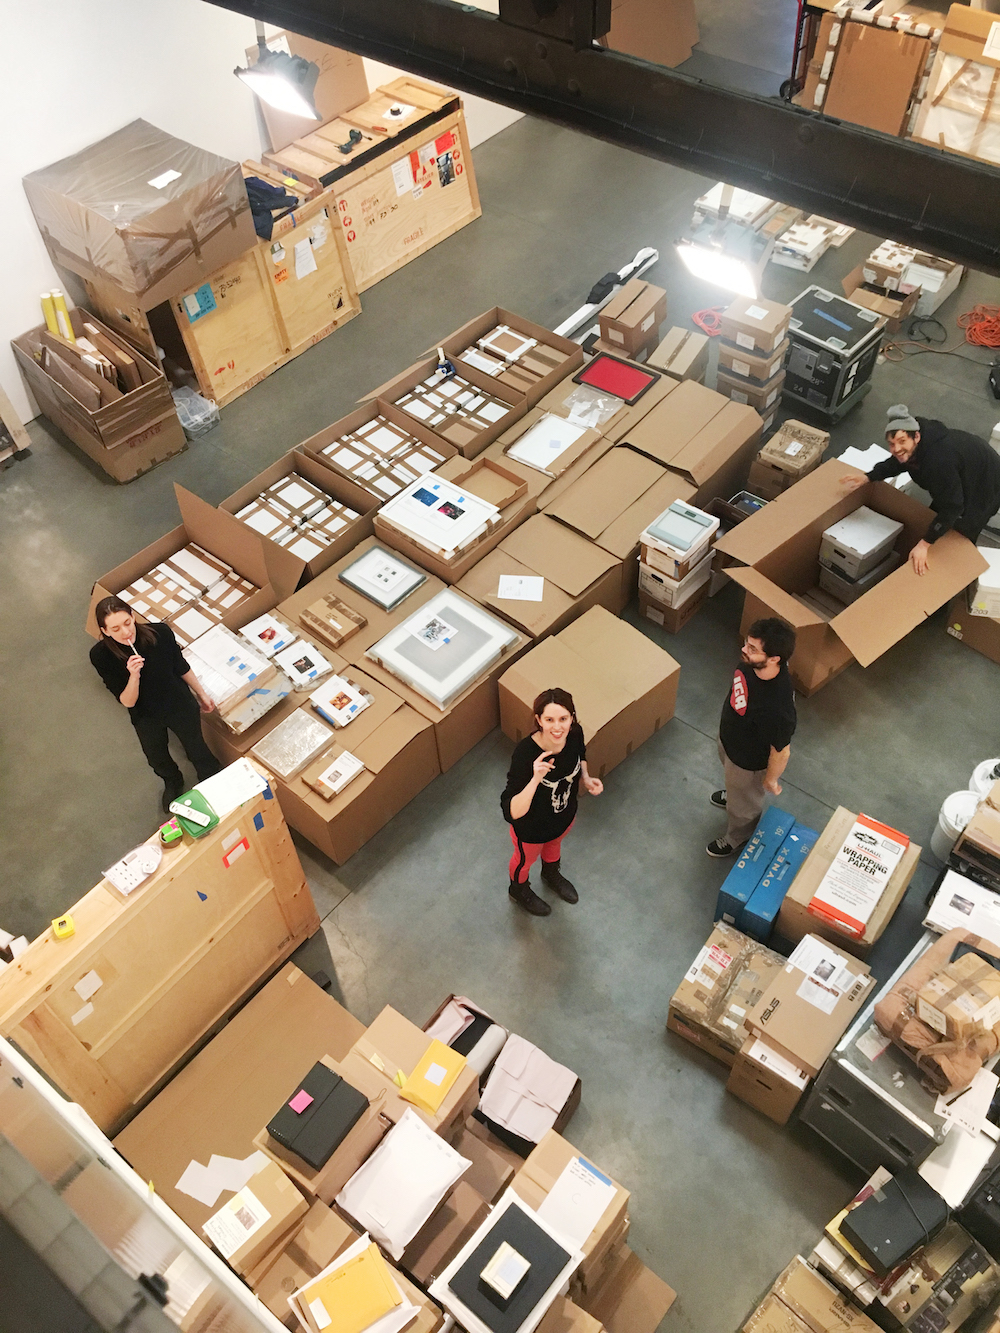 Boxes of archives being packed at Andrea Rosen Gallery before being sent to the Smithsonian.